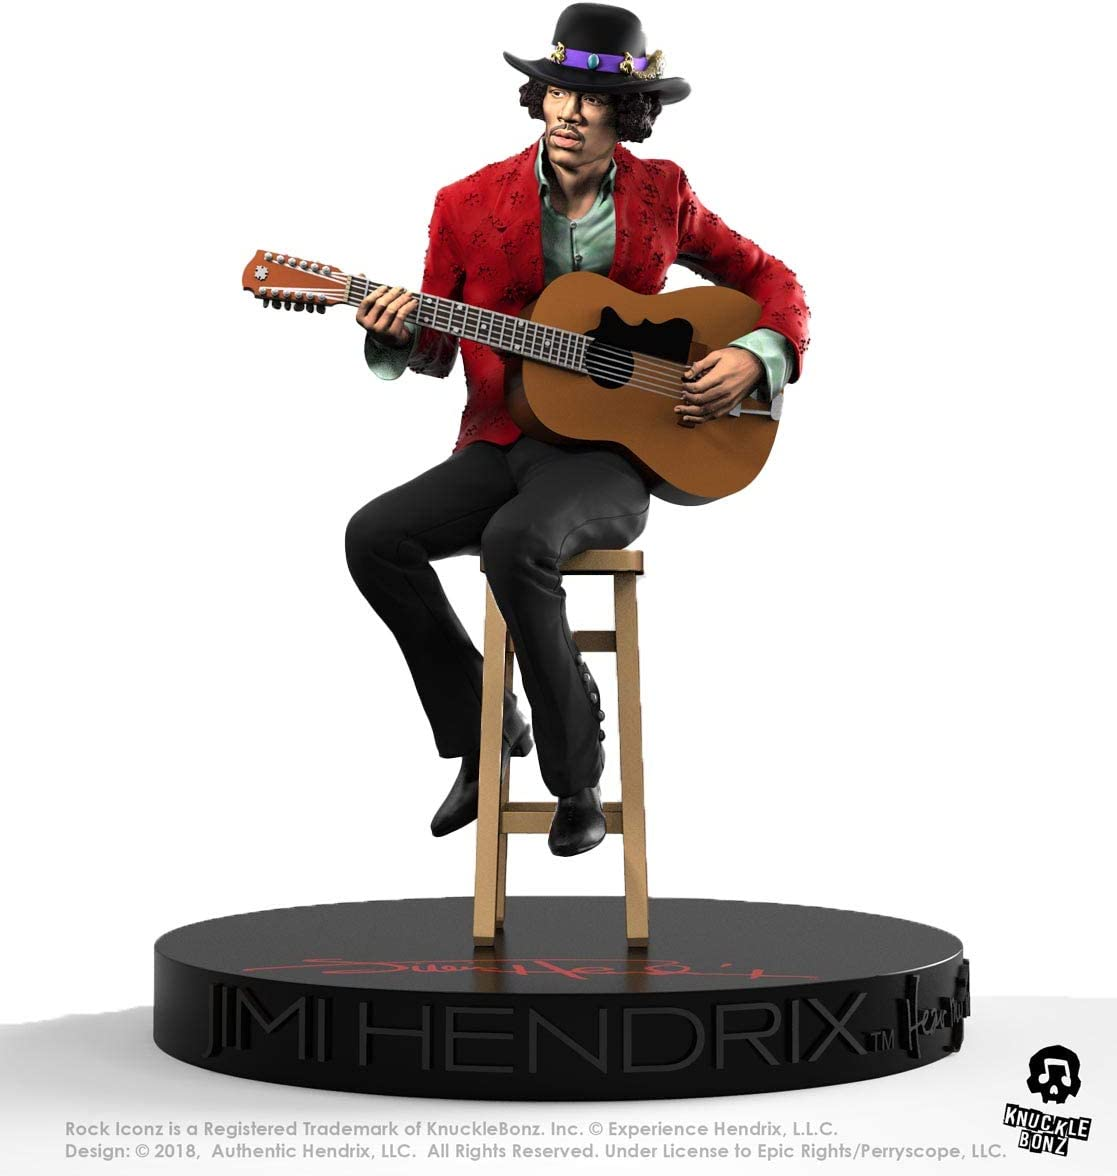 Knucklebonz Jimi Hendrix II Limited Edition Collectible Statue - Rock Iconz, Officially Licensed, Includes CoA